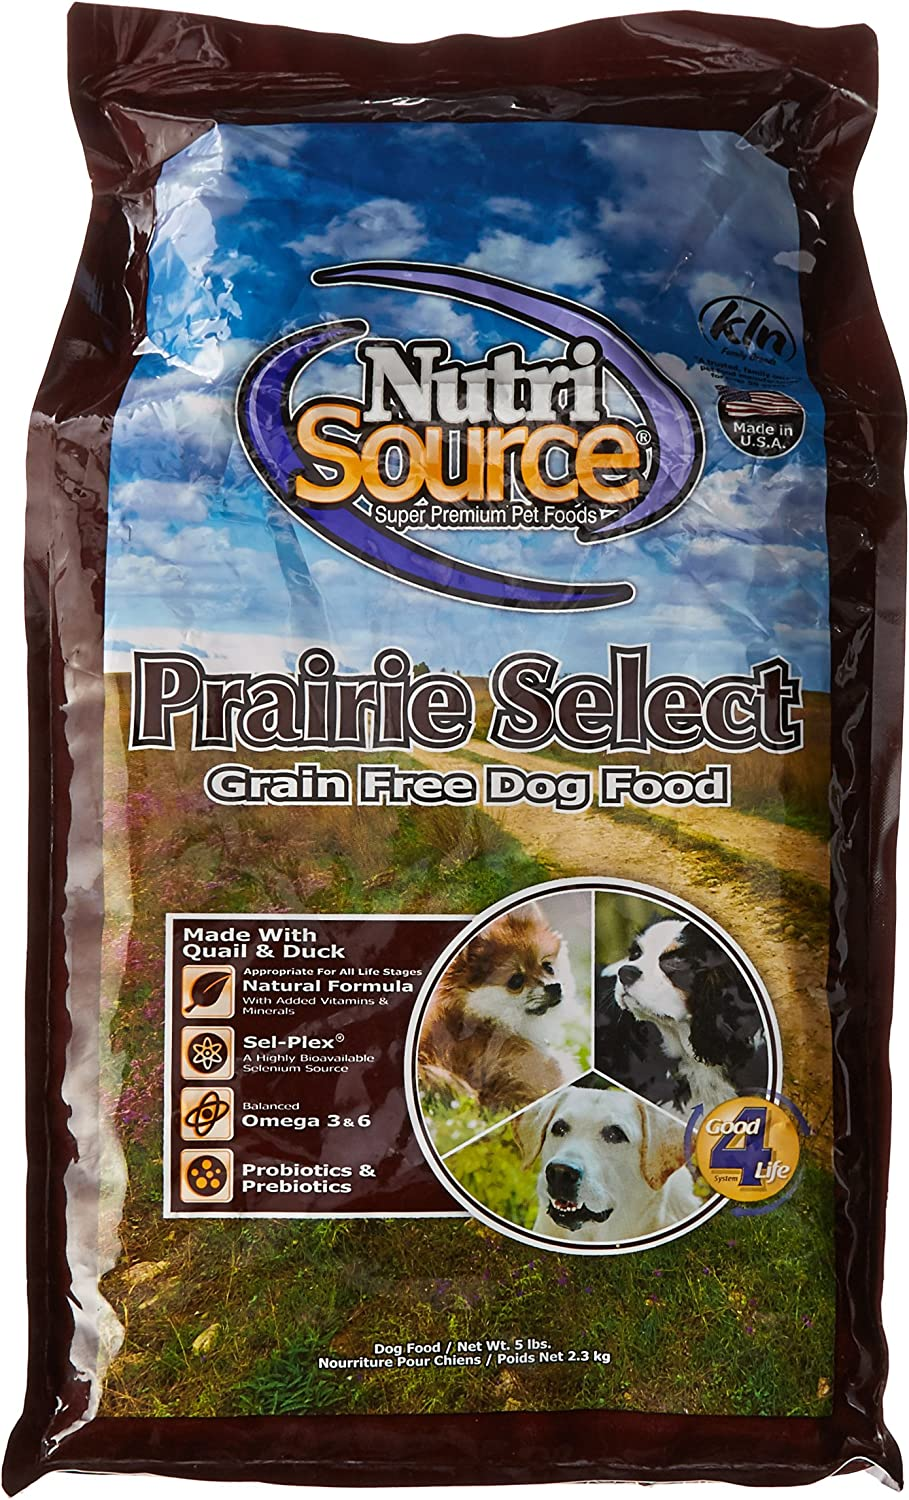 NutriSource Grain Free Prairie Select with Quail Dog Food 5lb by NutriSource Grain Free Prairie Select with Quail Dog Food